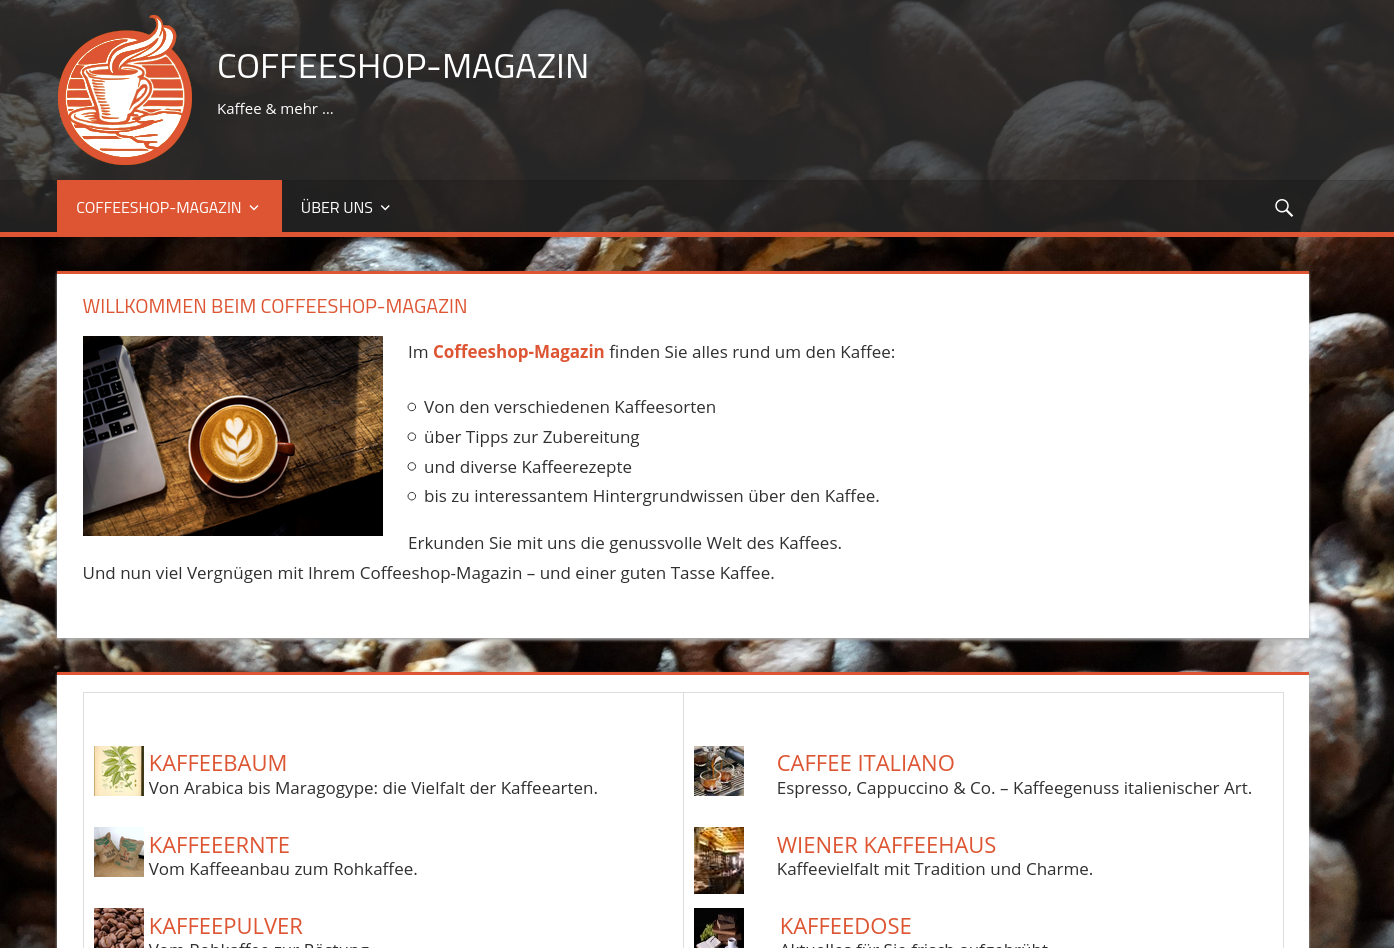 Coffeeshop-Magazin